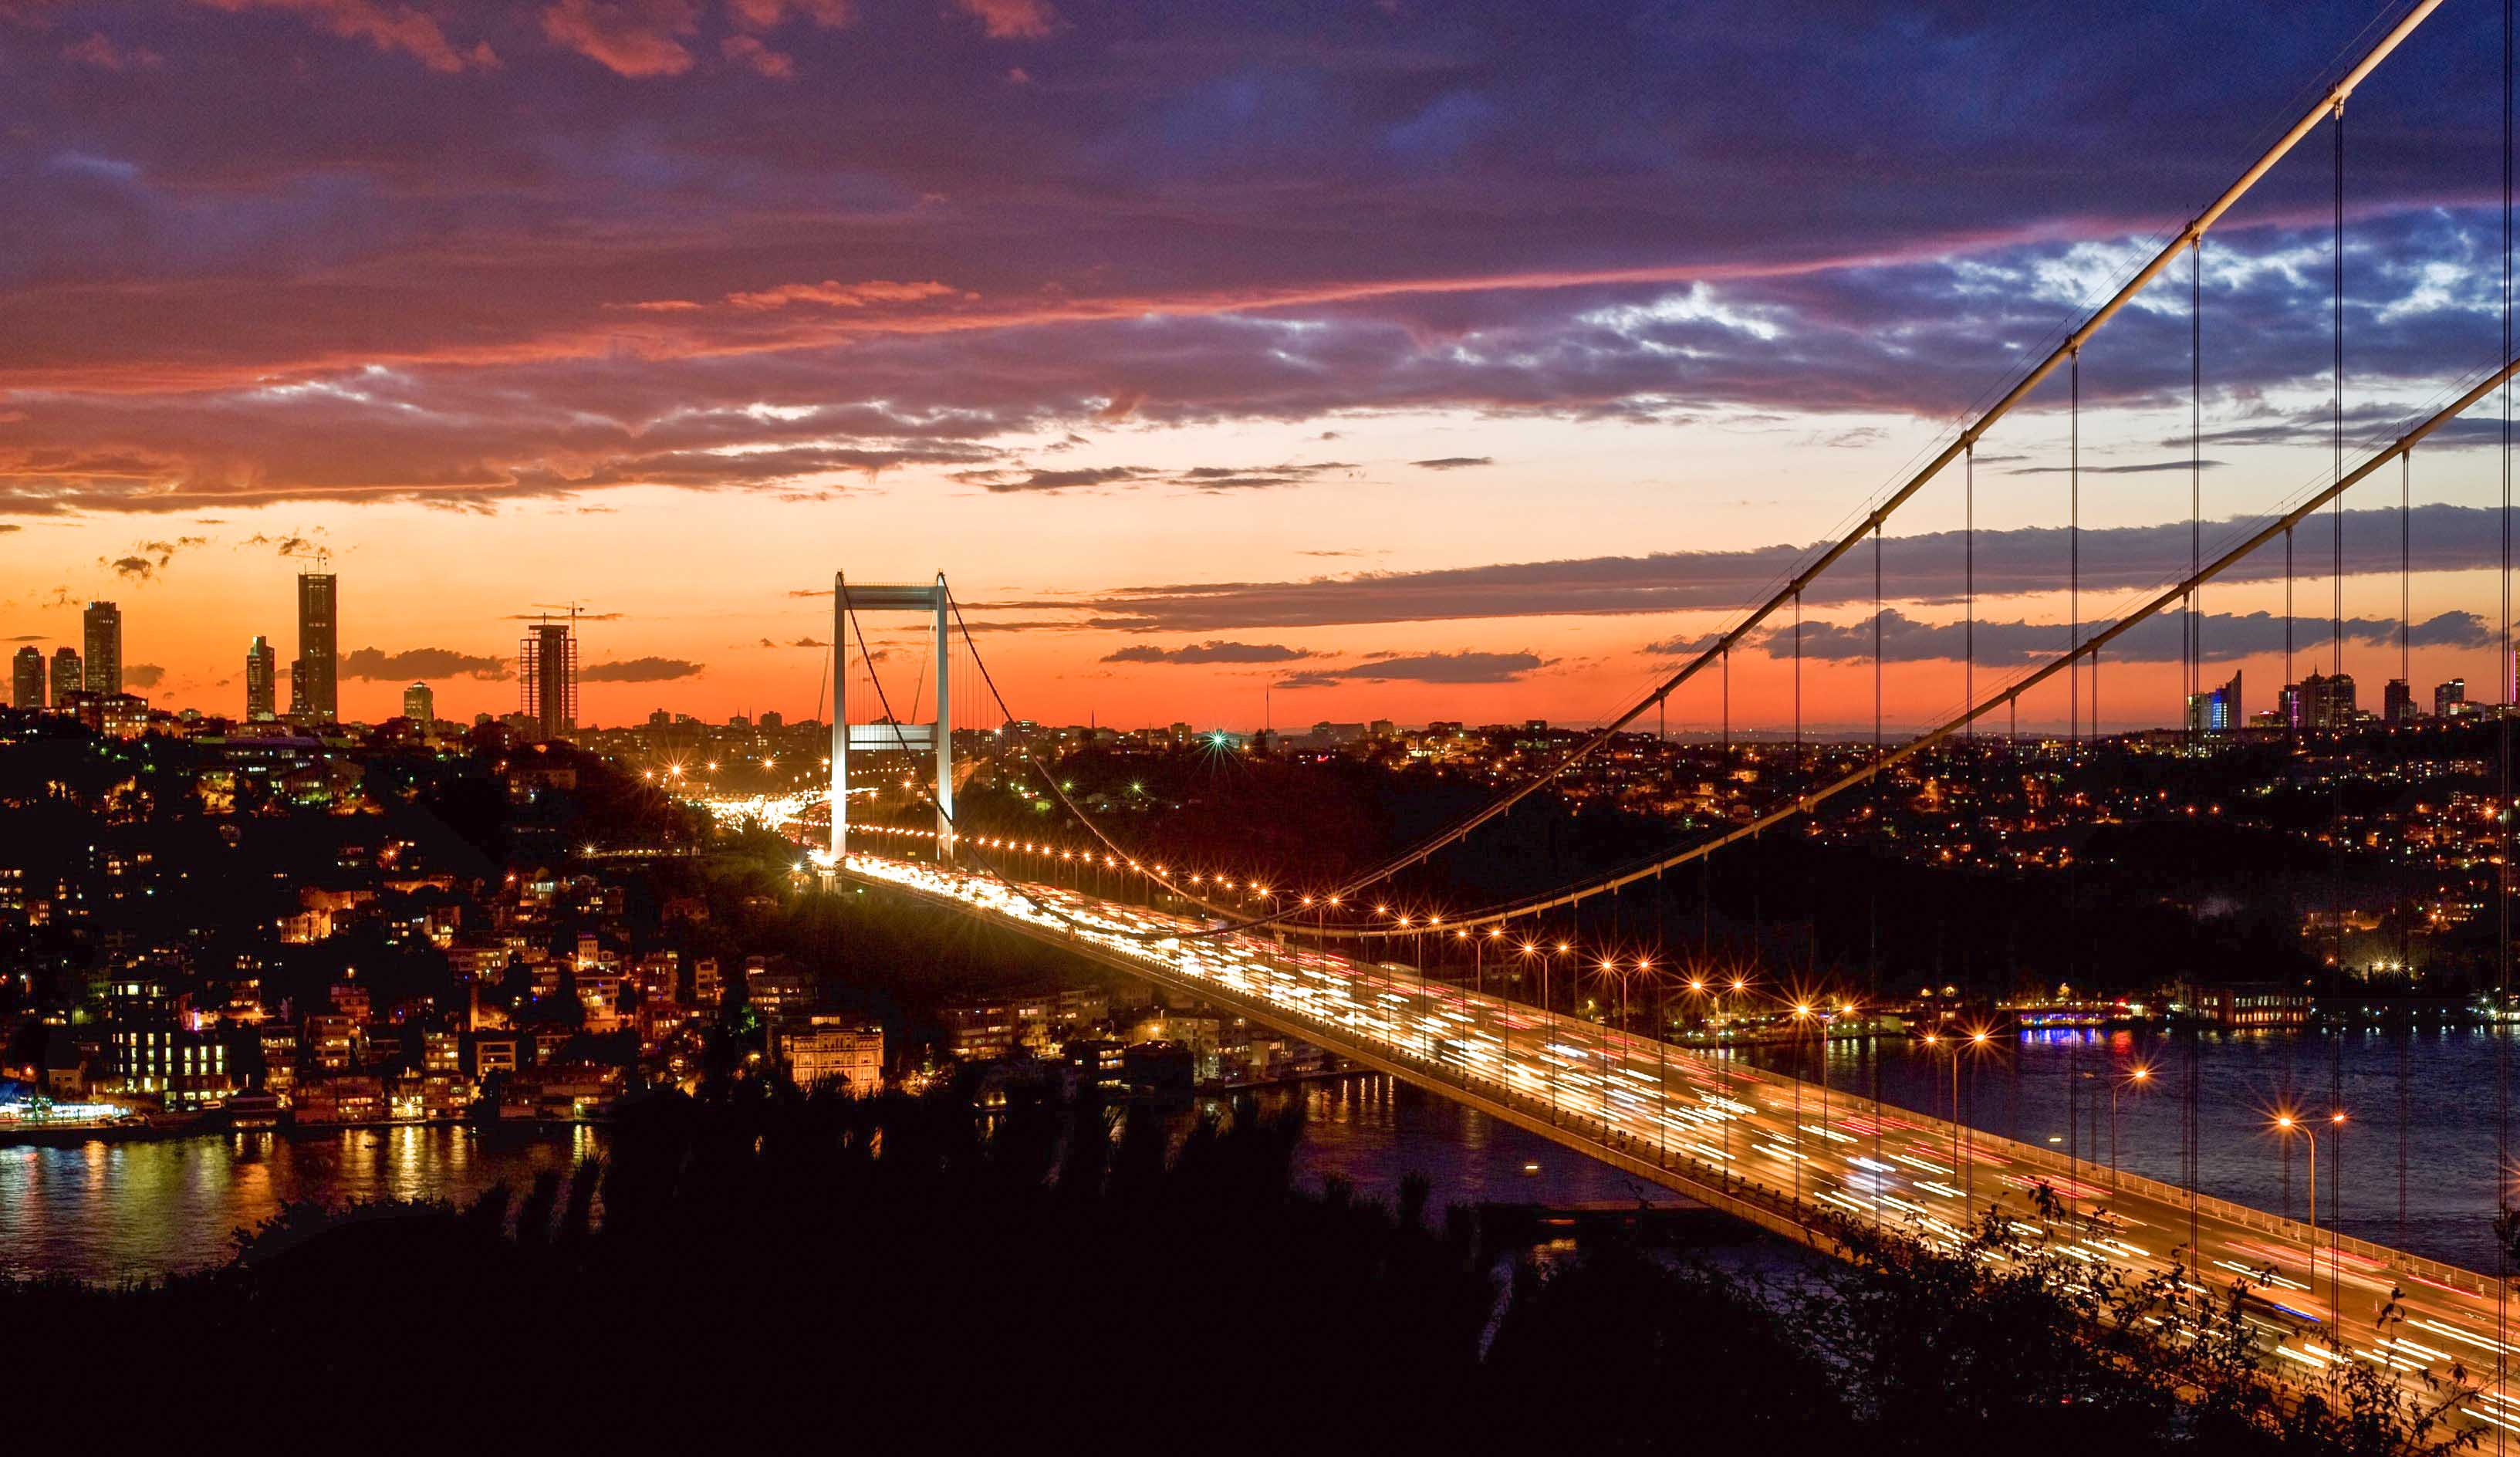 Free Download Istanbul Turkey Wallpapers In 4k All Hd